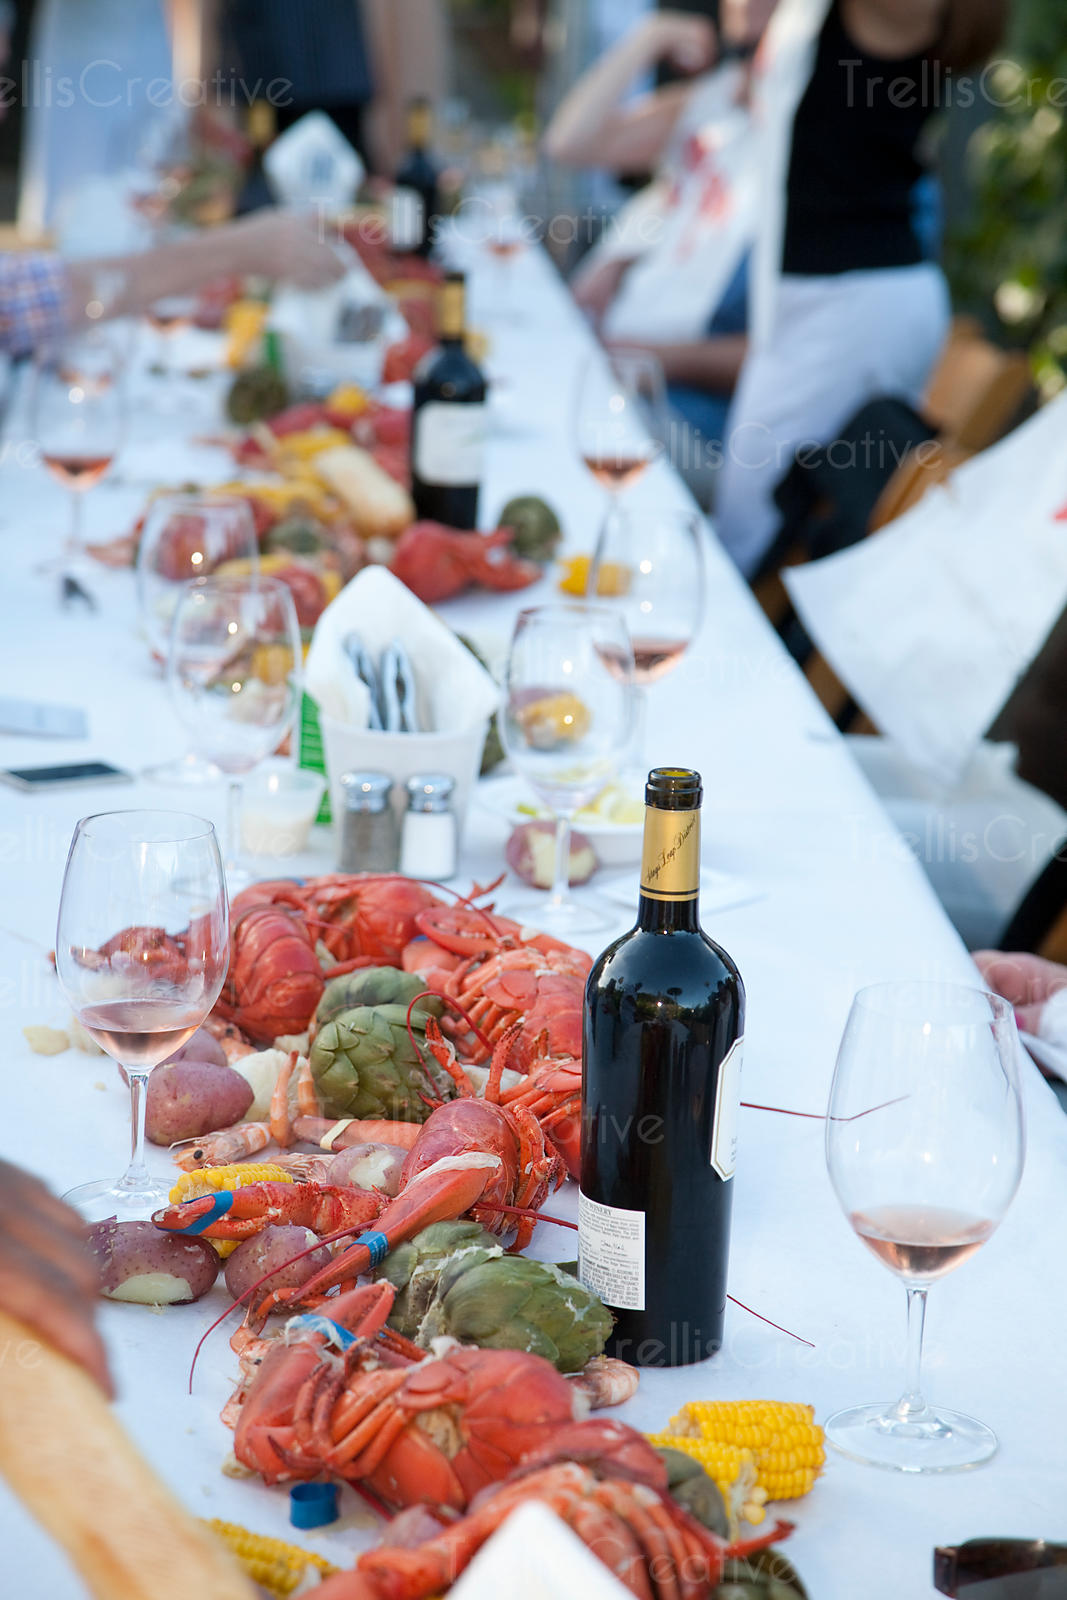 Winery lobster feed party with Napa Valley wine